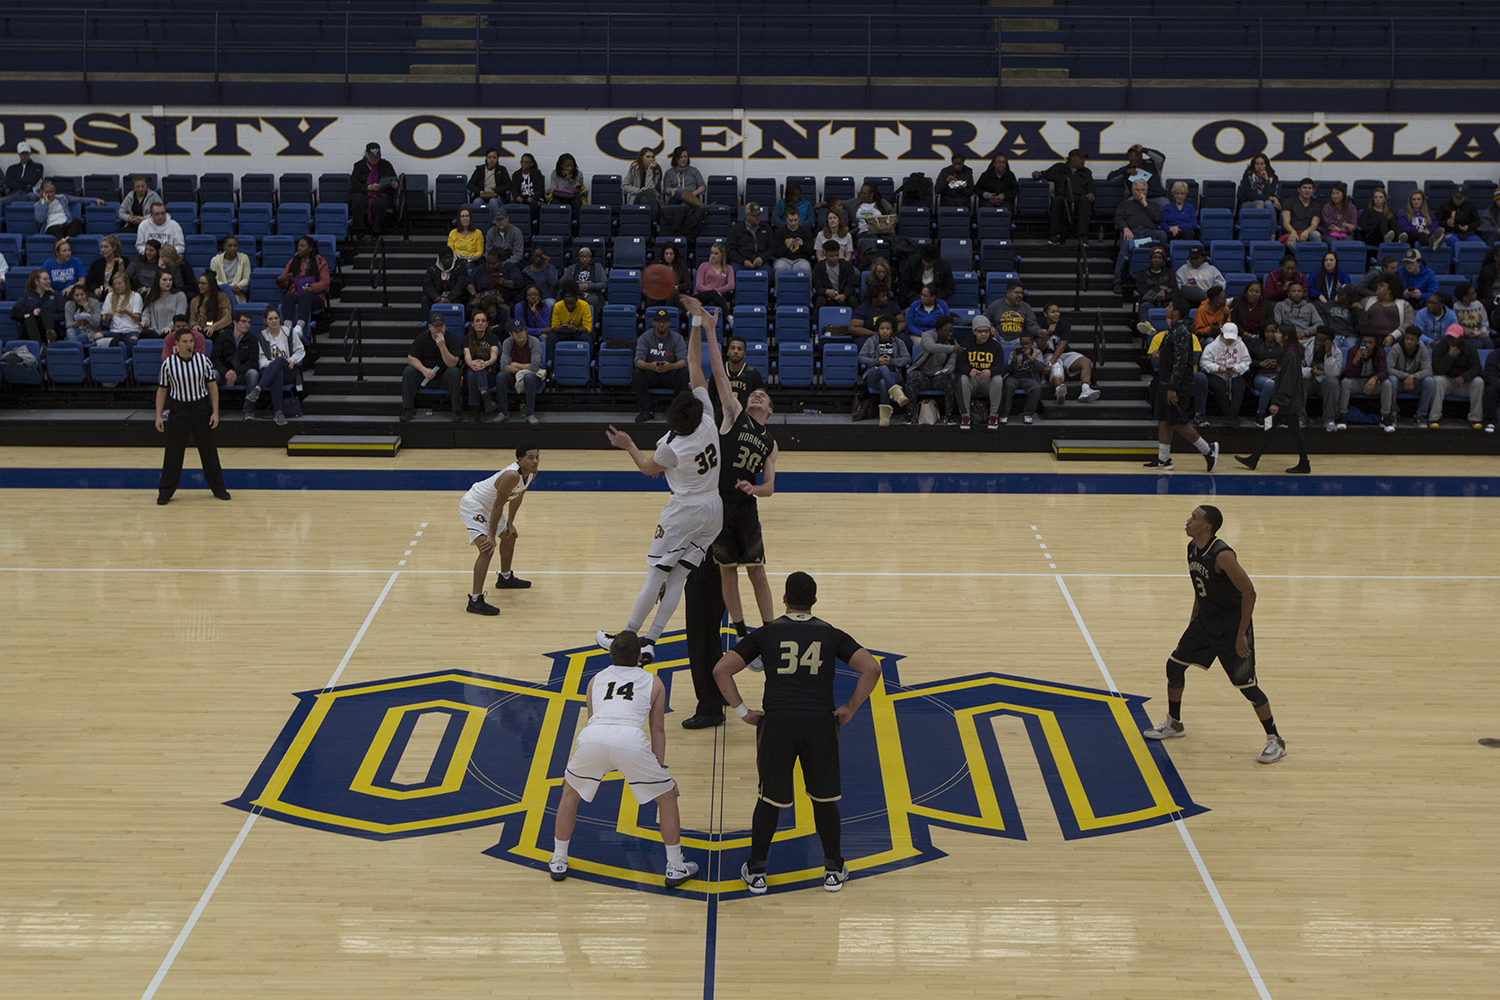 Byford Leads UCO Past Fort Hays State